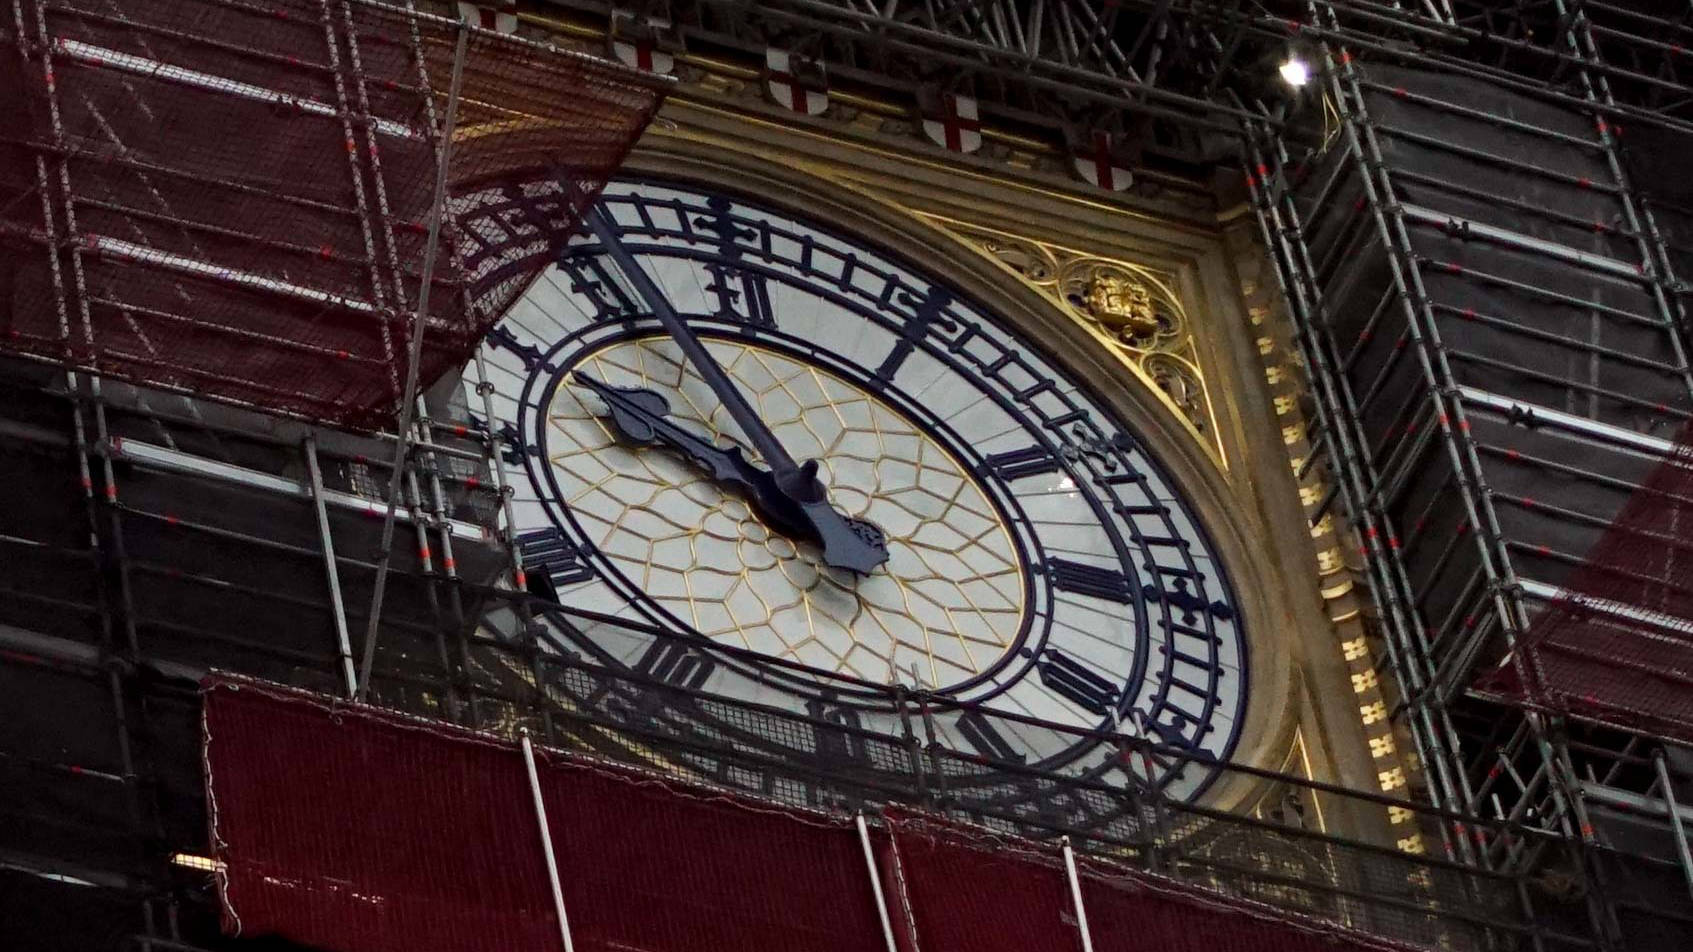 Countdown clock to be projected on to Downing Street to mark 'Brexit Day'